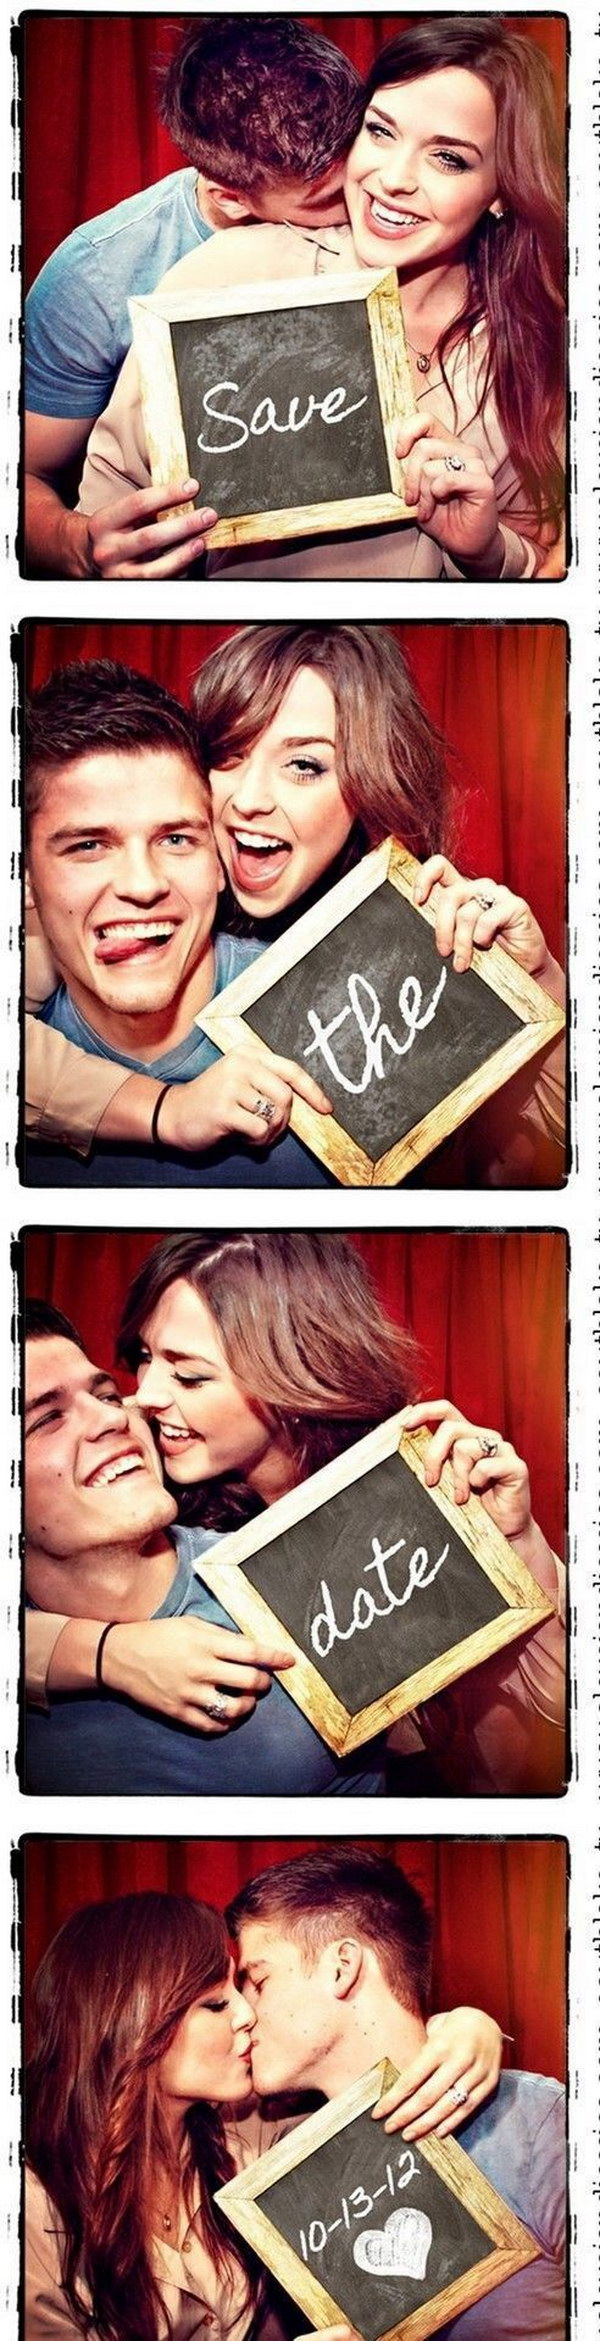 Save the Date Photo Booth